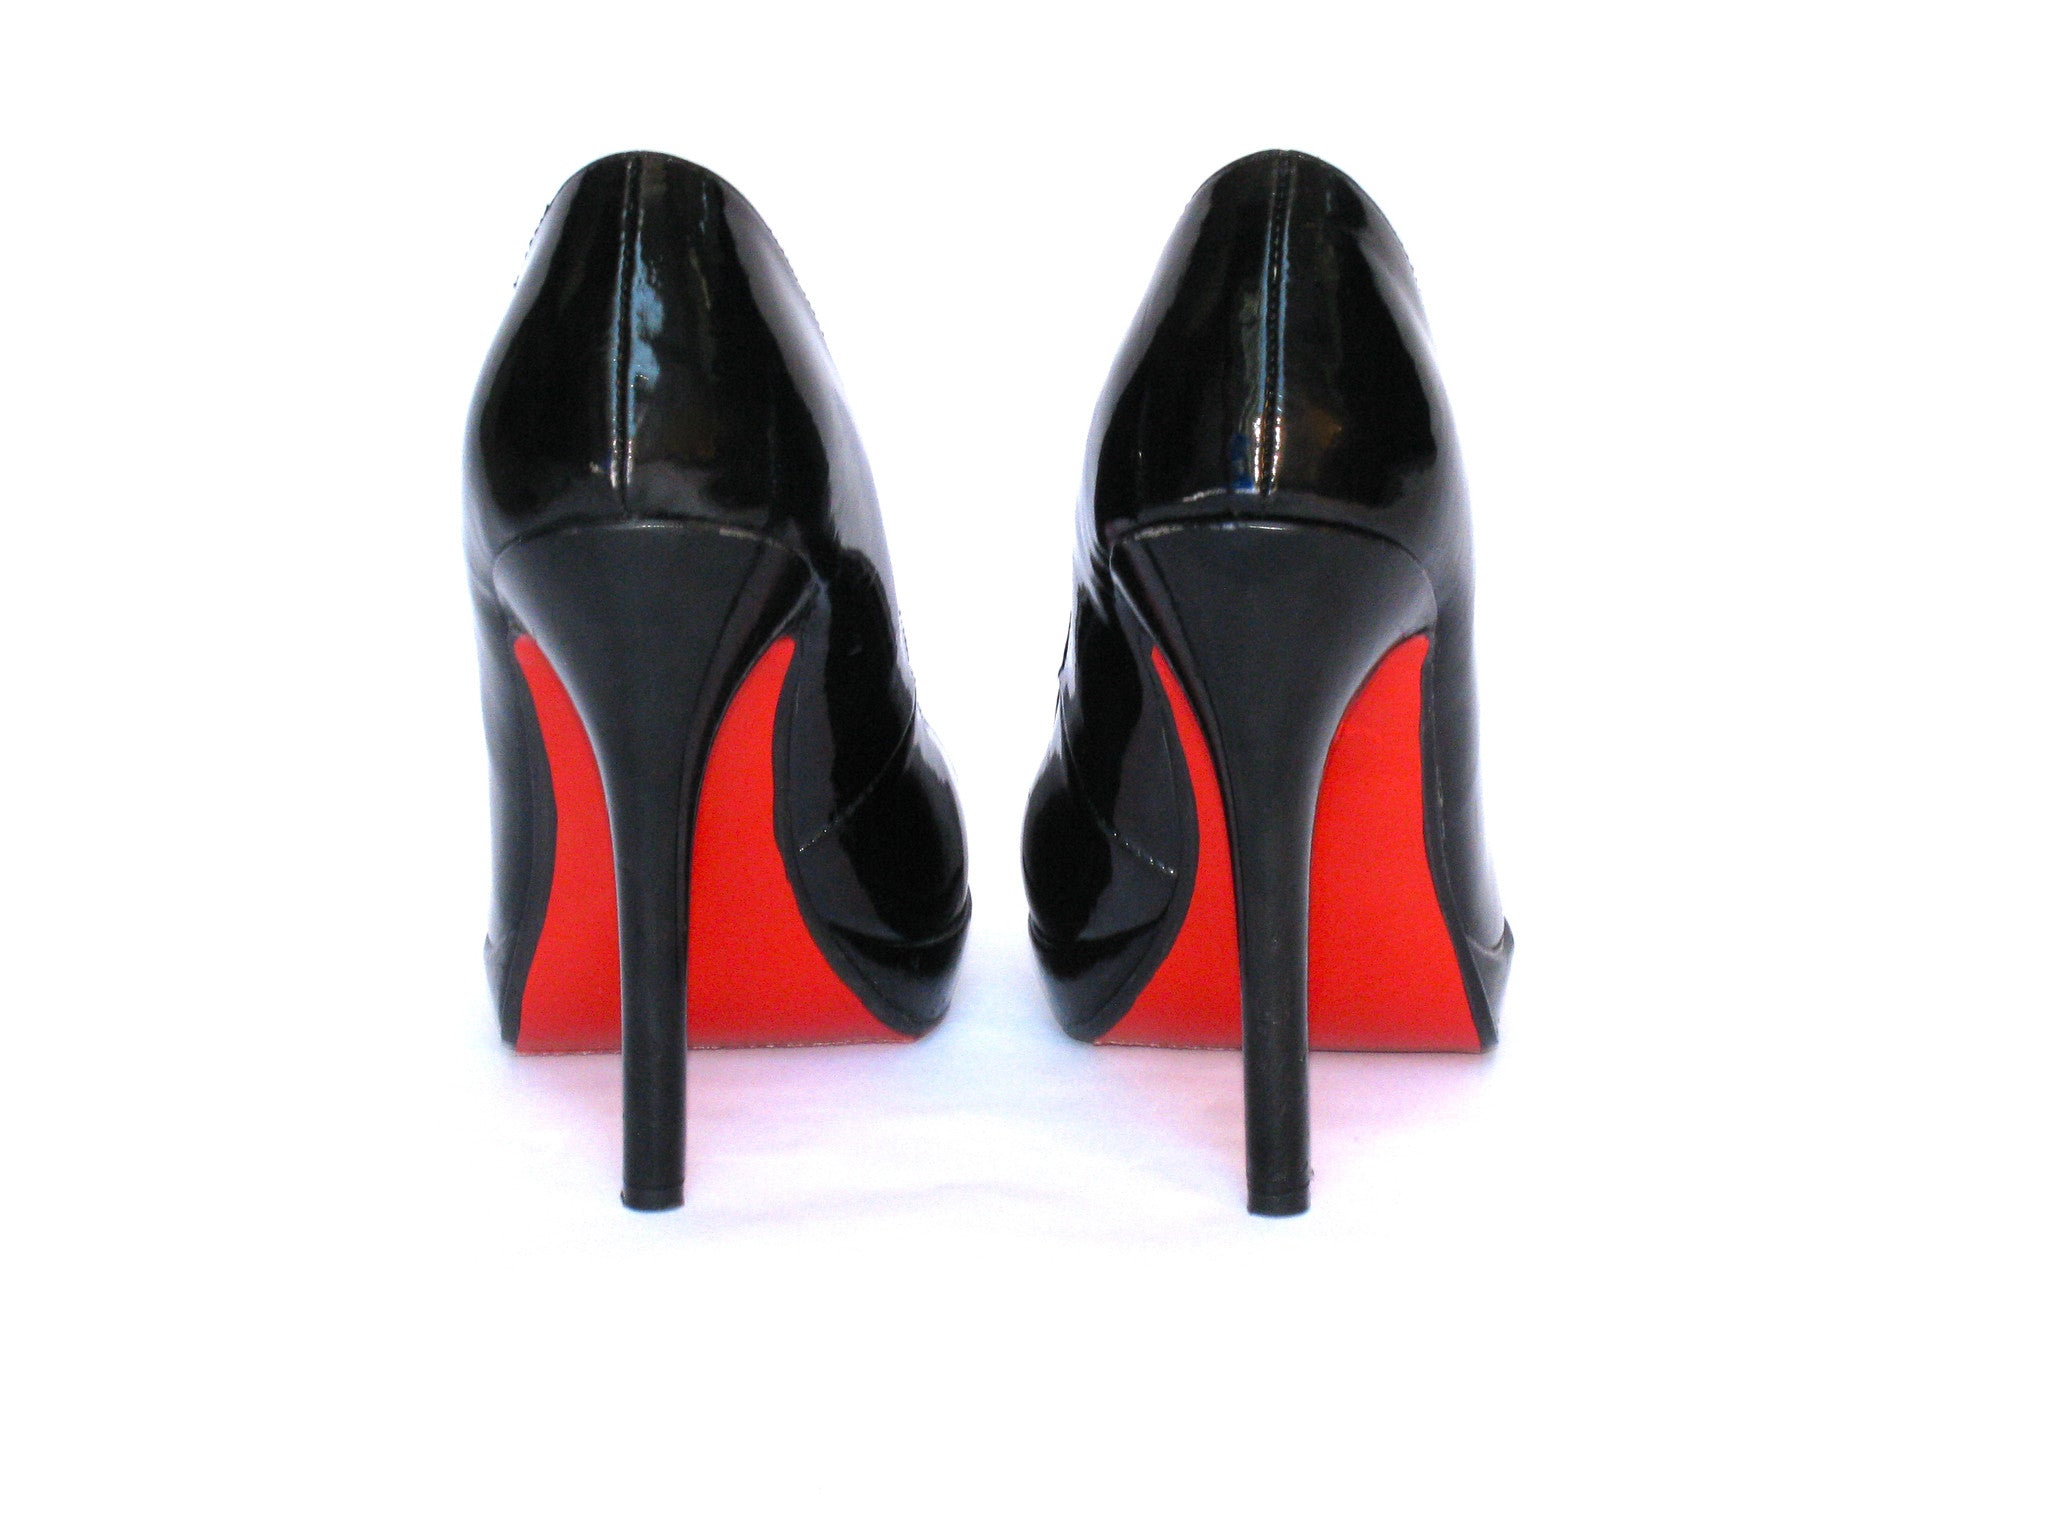 dbe19a96485e Red Colored Shoe Bottom Sole Kit for Heels - DIY Red Bottoms - Slip ...